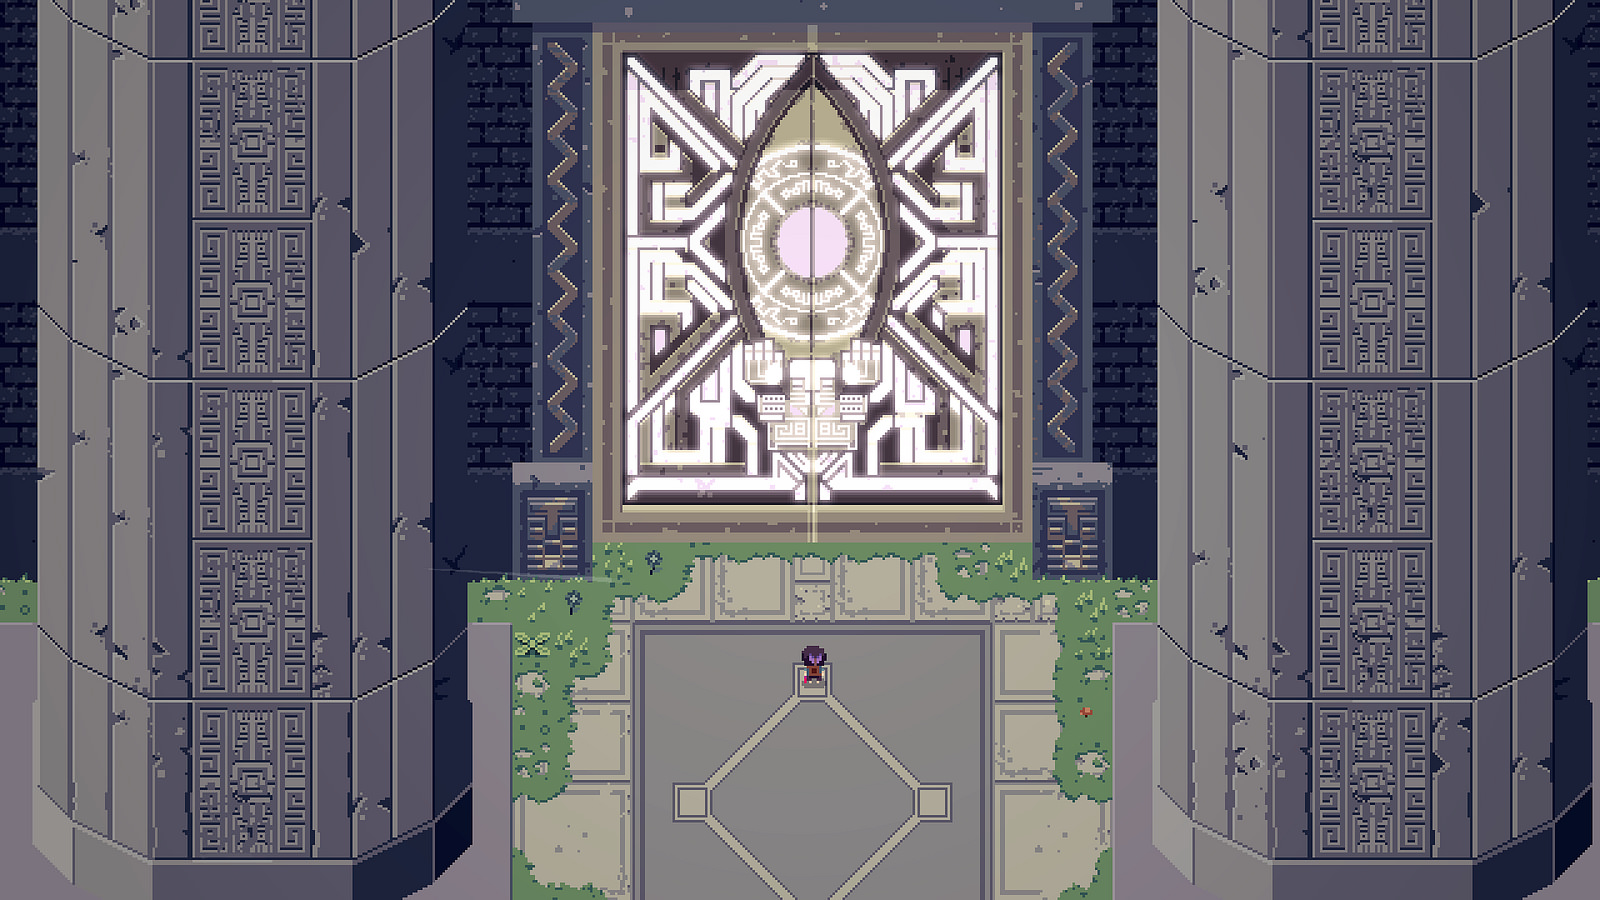 If you thought Dark Souls was hard, try Titan Souls